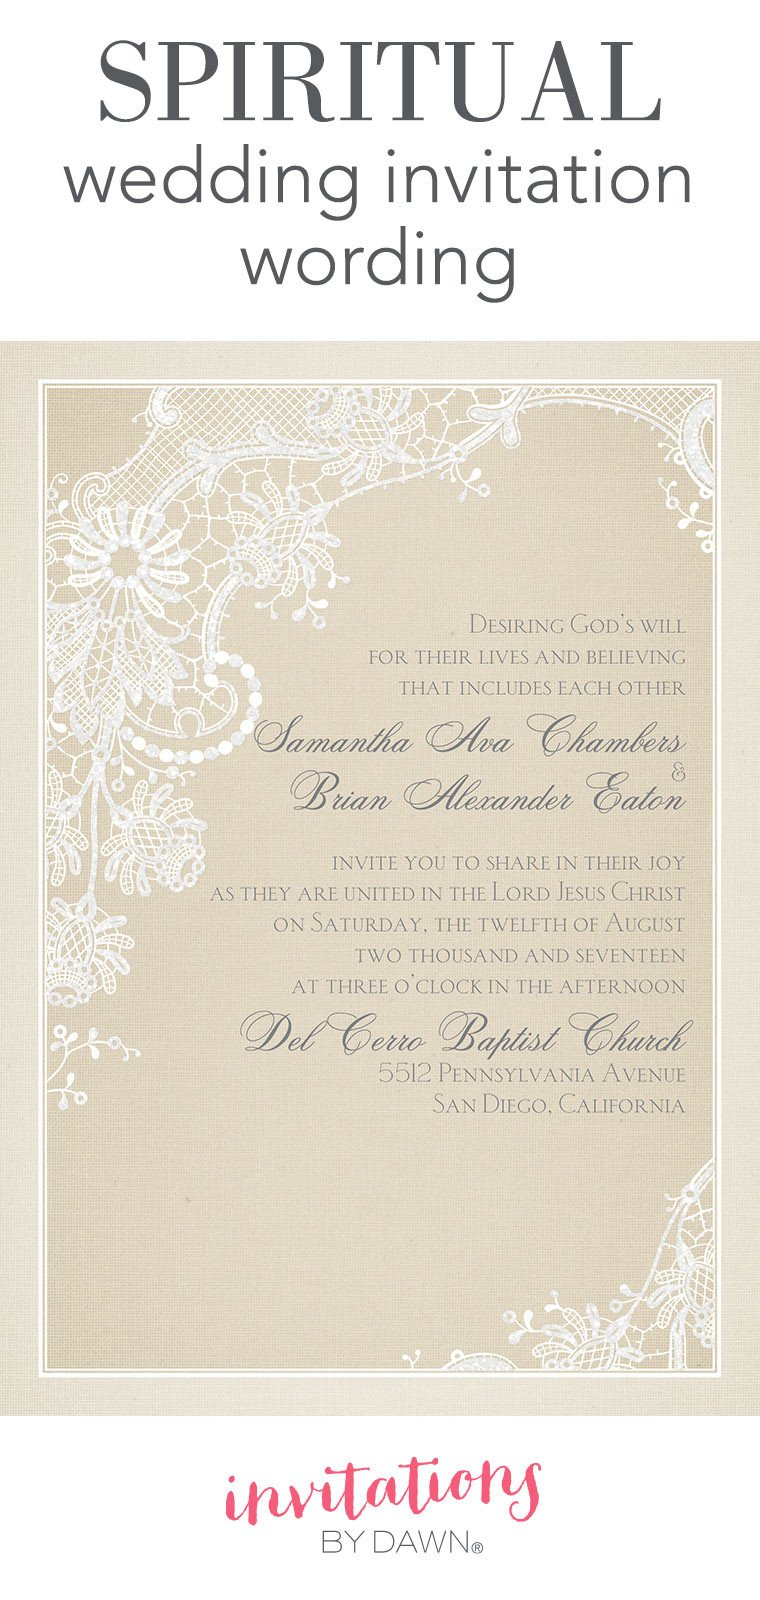 Wedding Invite Wording Template Spiritual Wedding Invitation Wording